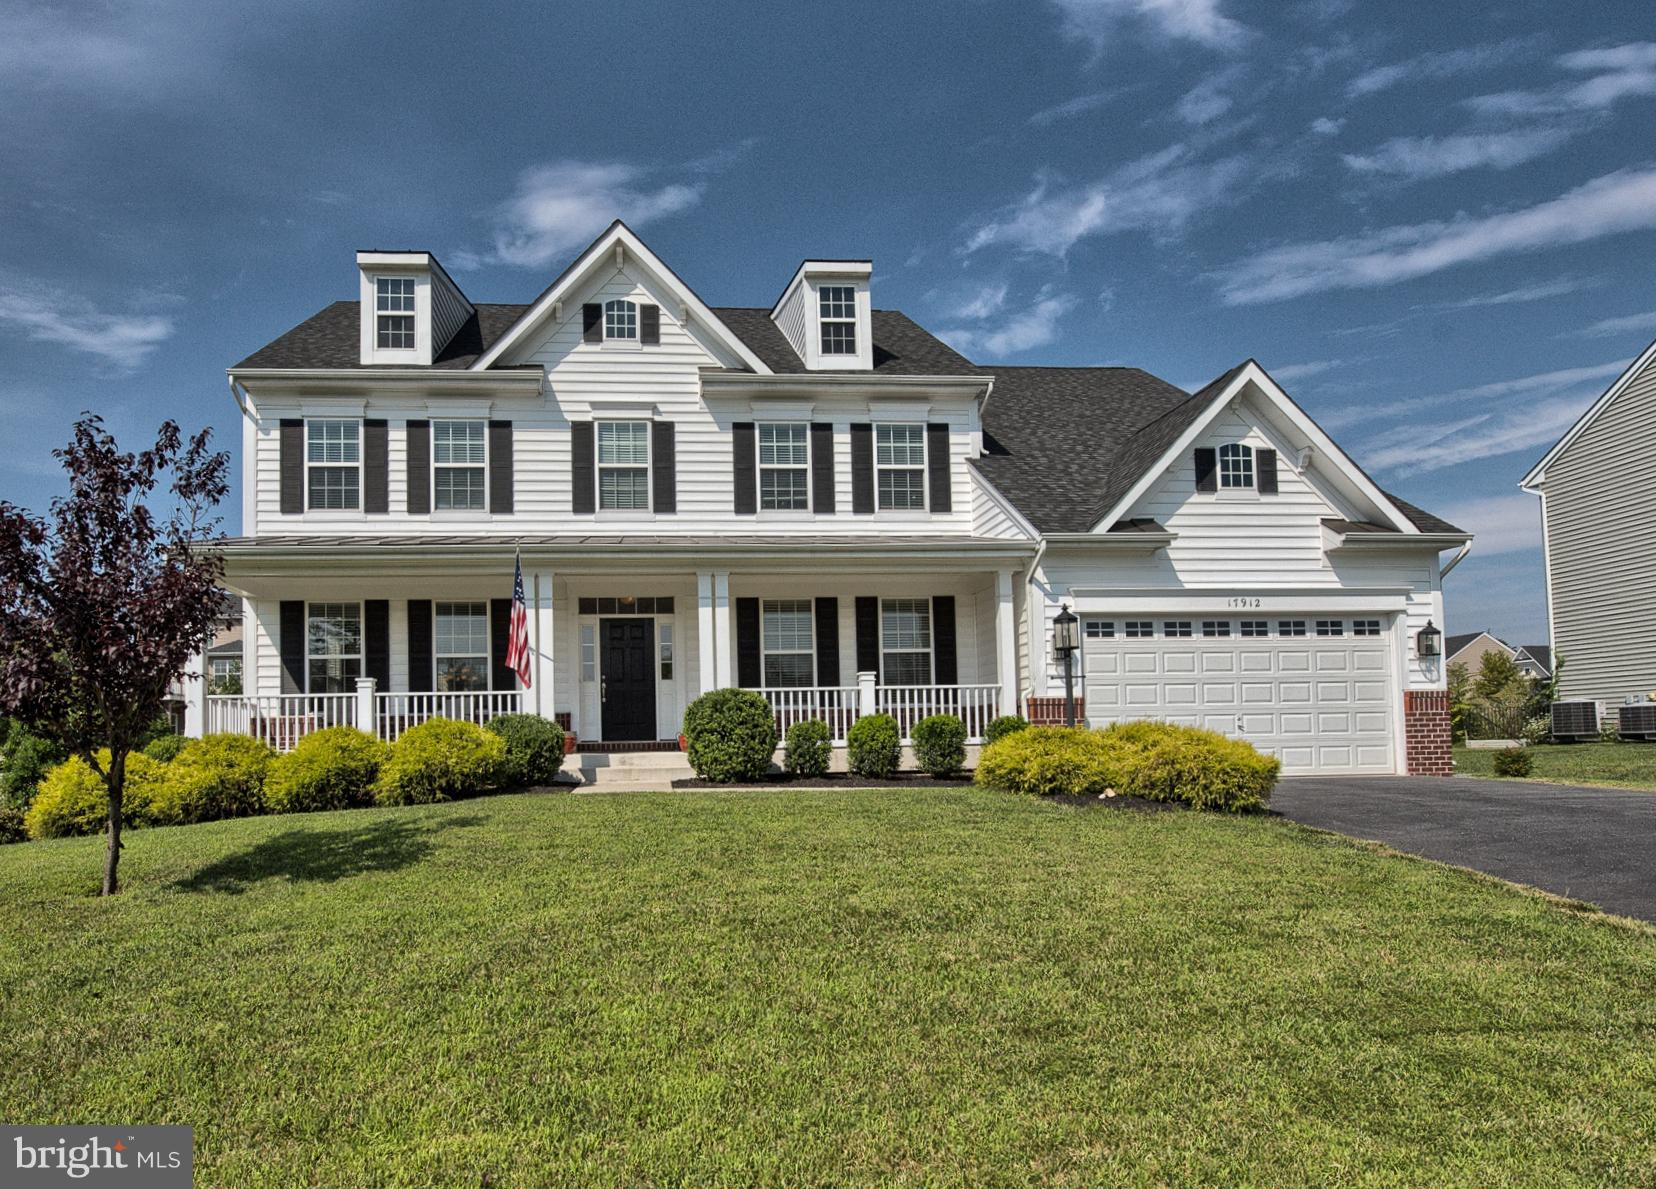 17912 DOCTOR WALLING ROAD, POOLESVILLE, MD 20837